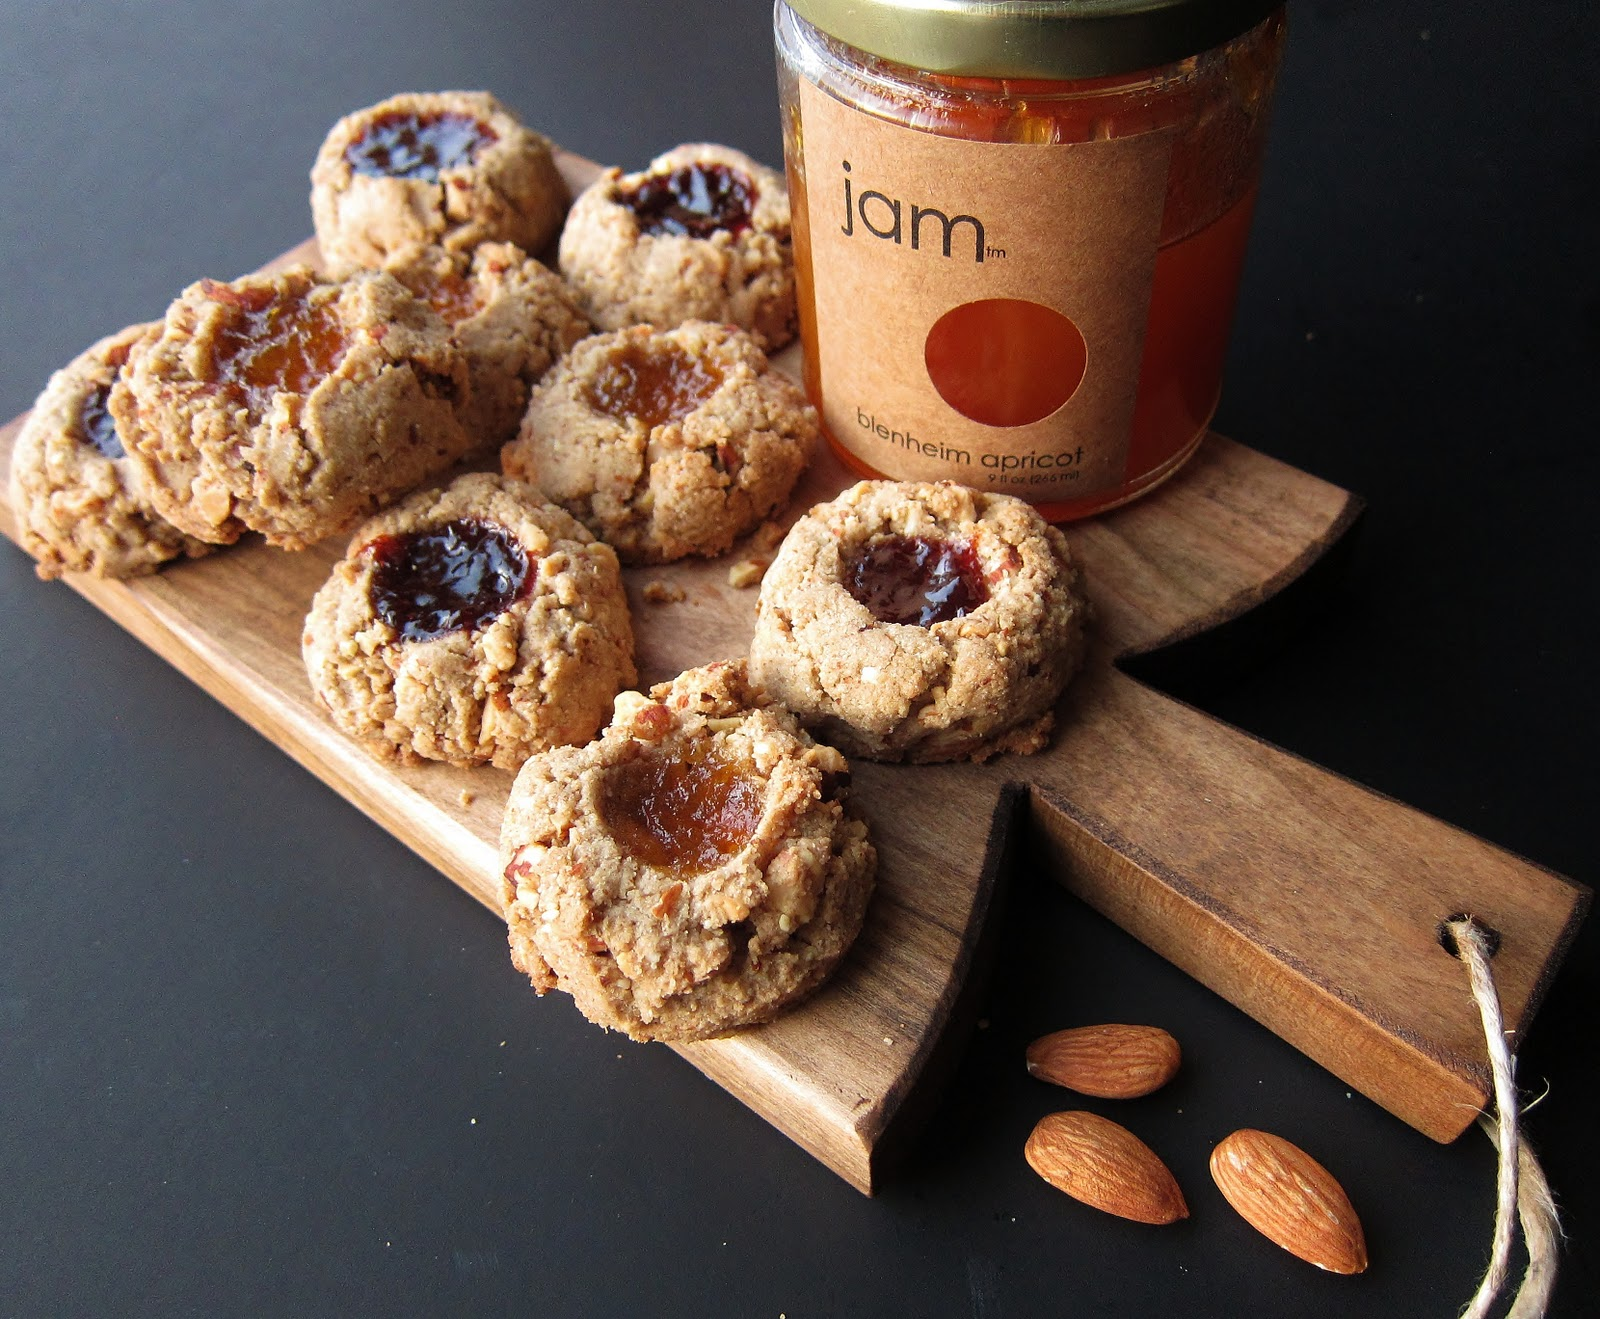 Arctic Garden Studio: Jammy Almond Thumbprint Cookies